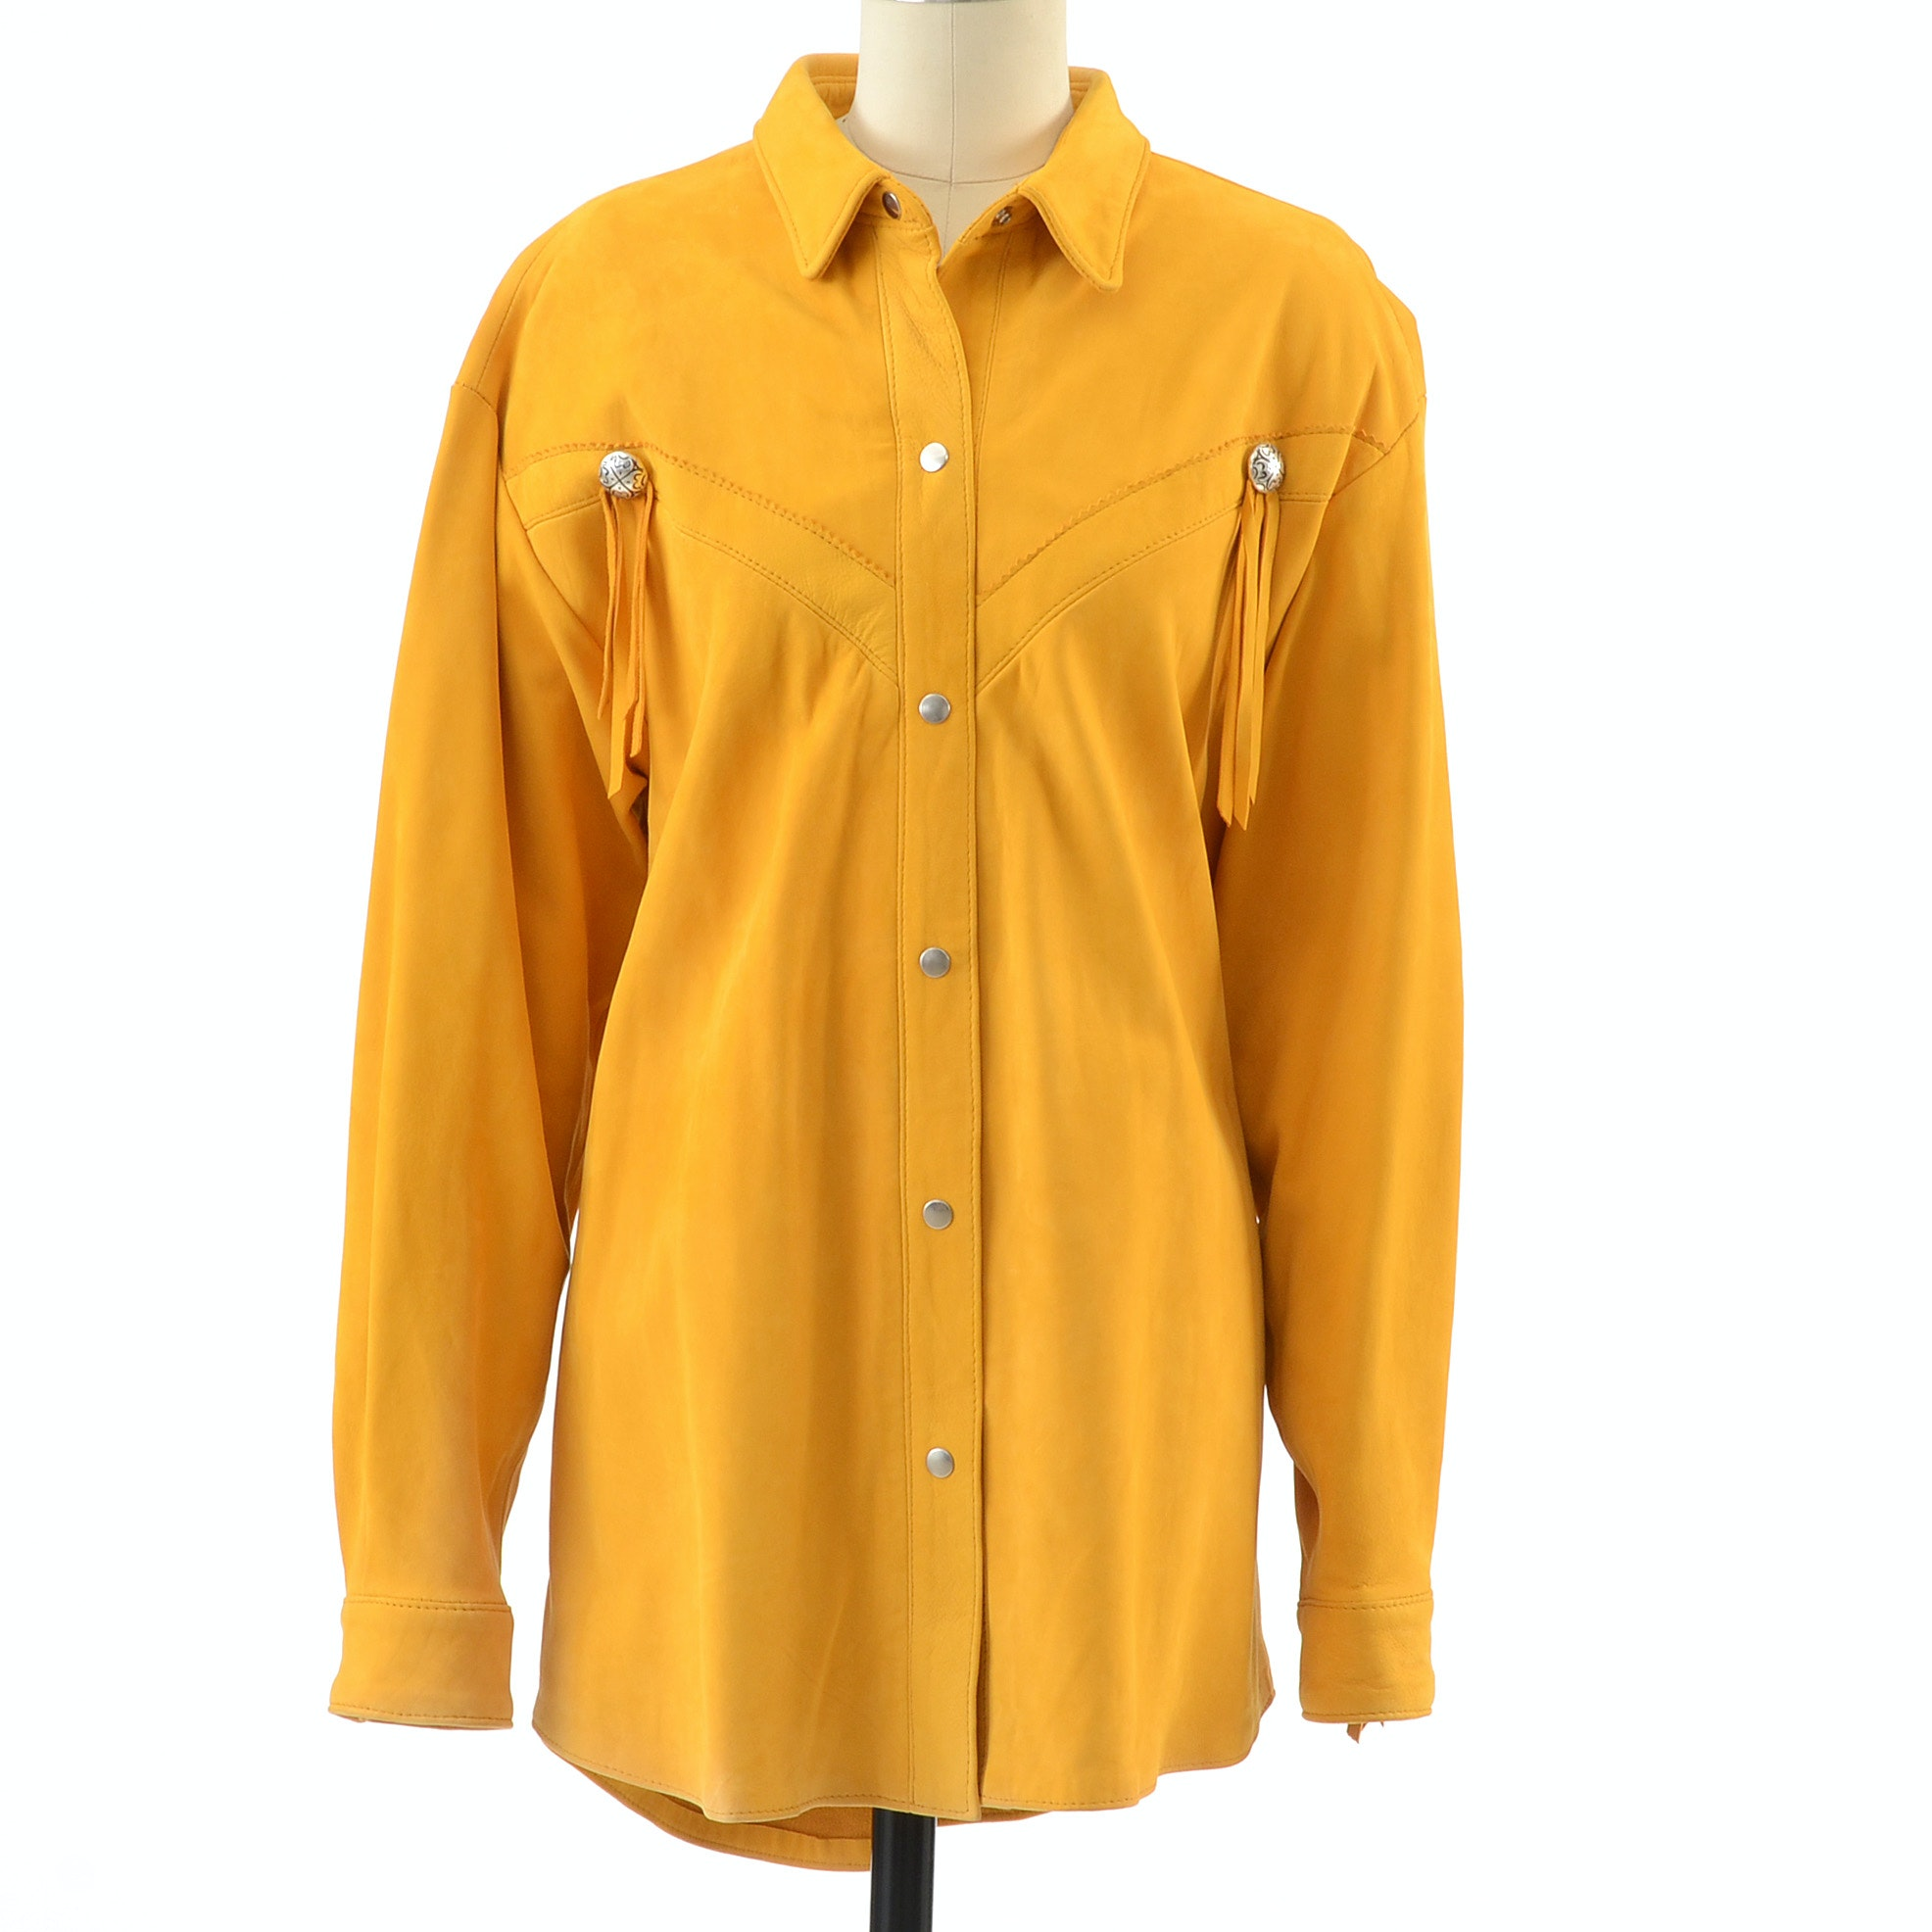 Positano Pelle Saffron Yellow Suede Leather Western Dress Snap Front Shirt Jacket